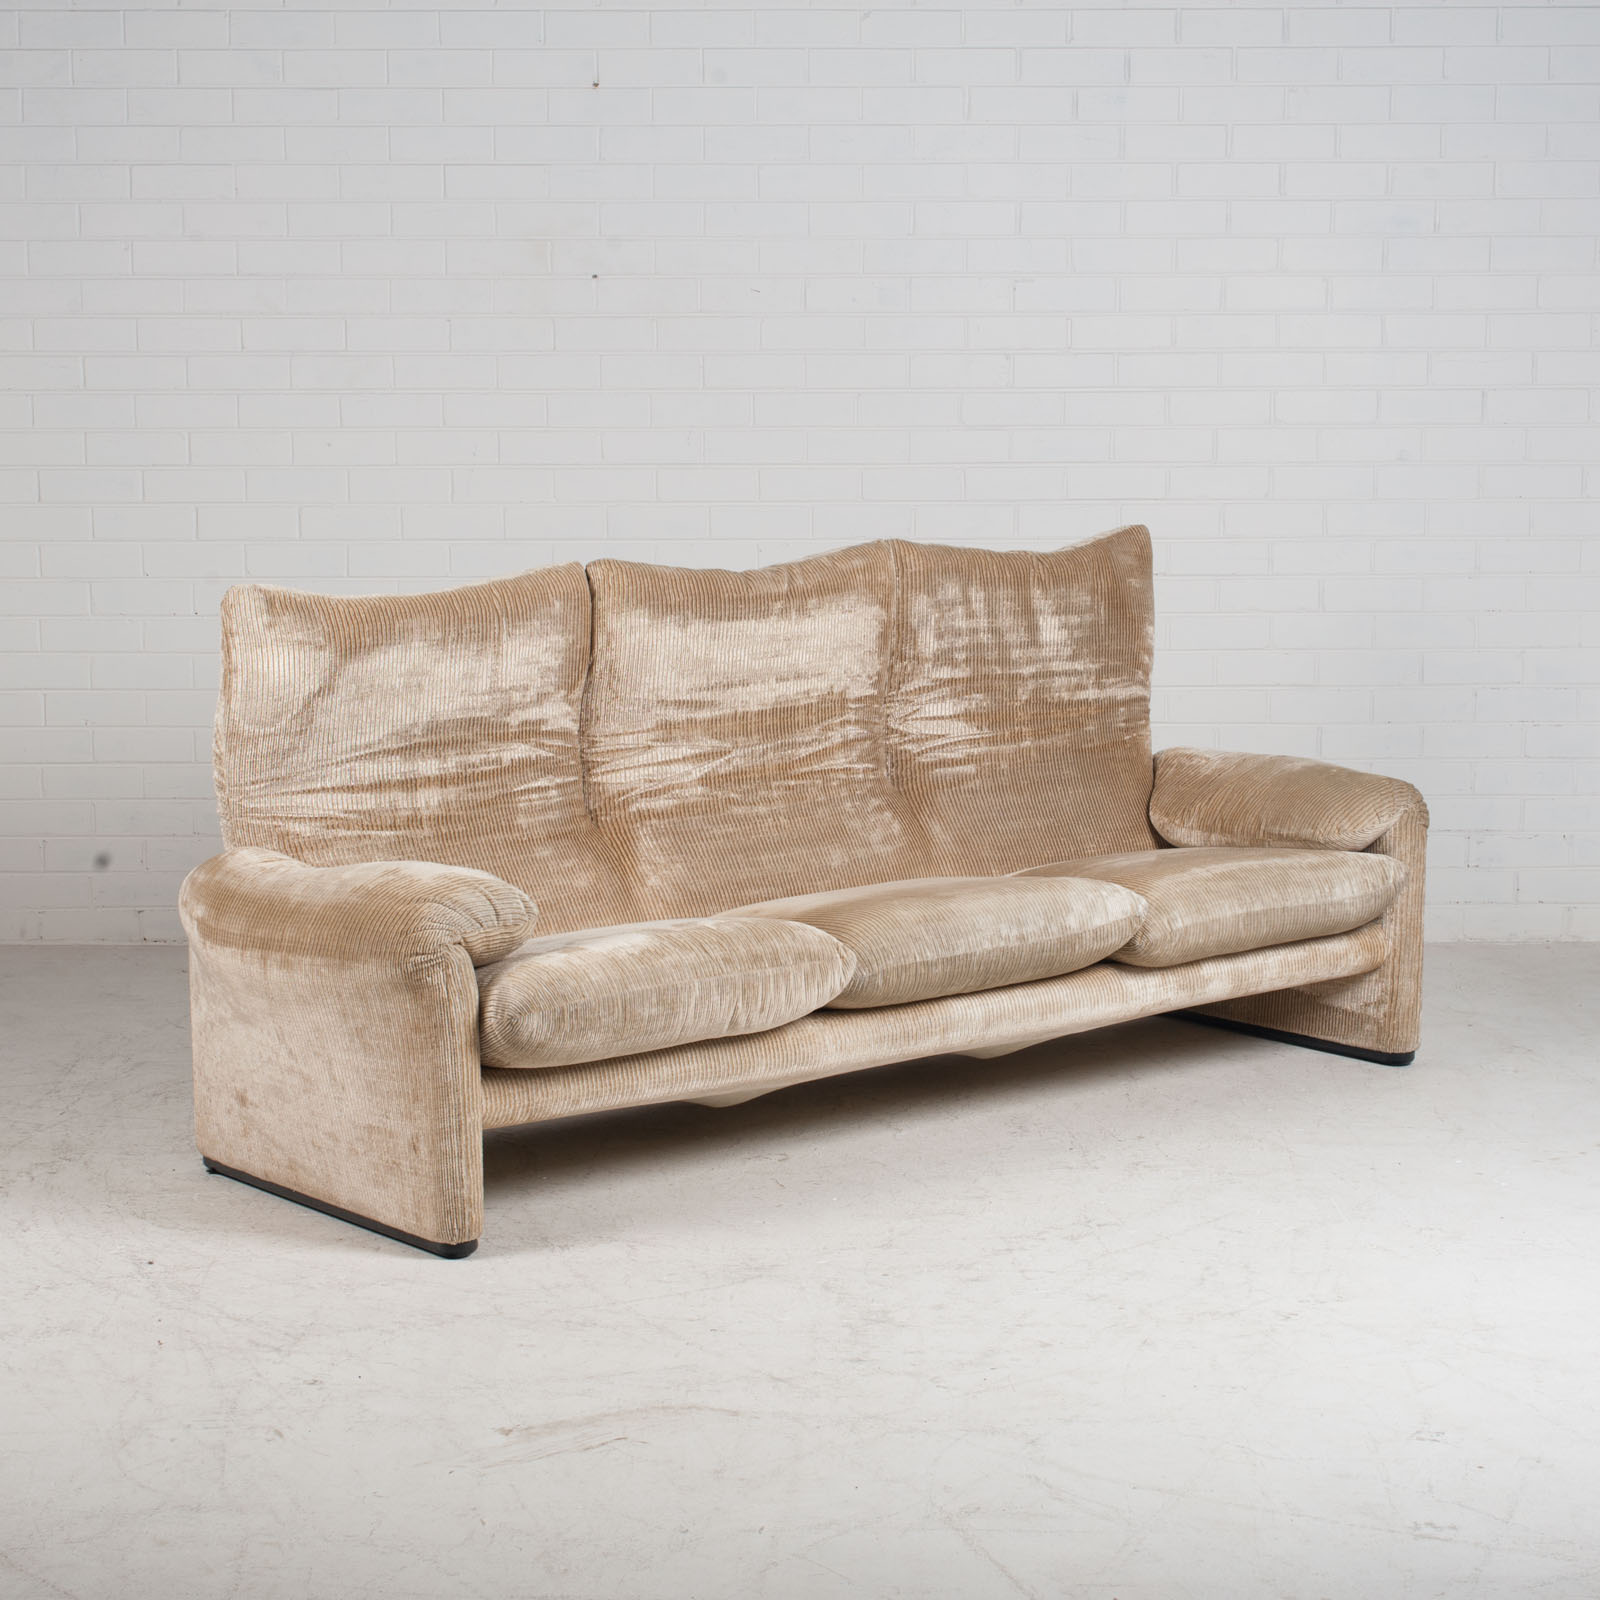 Maralunga 3 Seat Sofa By Vico Magistretti For Cassina In Original Upholstery 1970s Italy 03